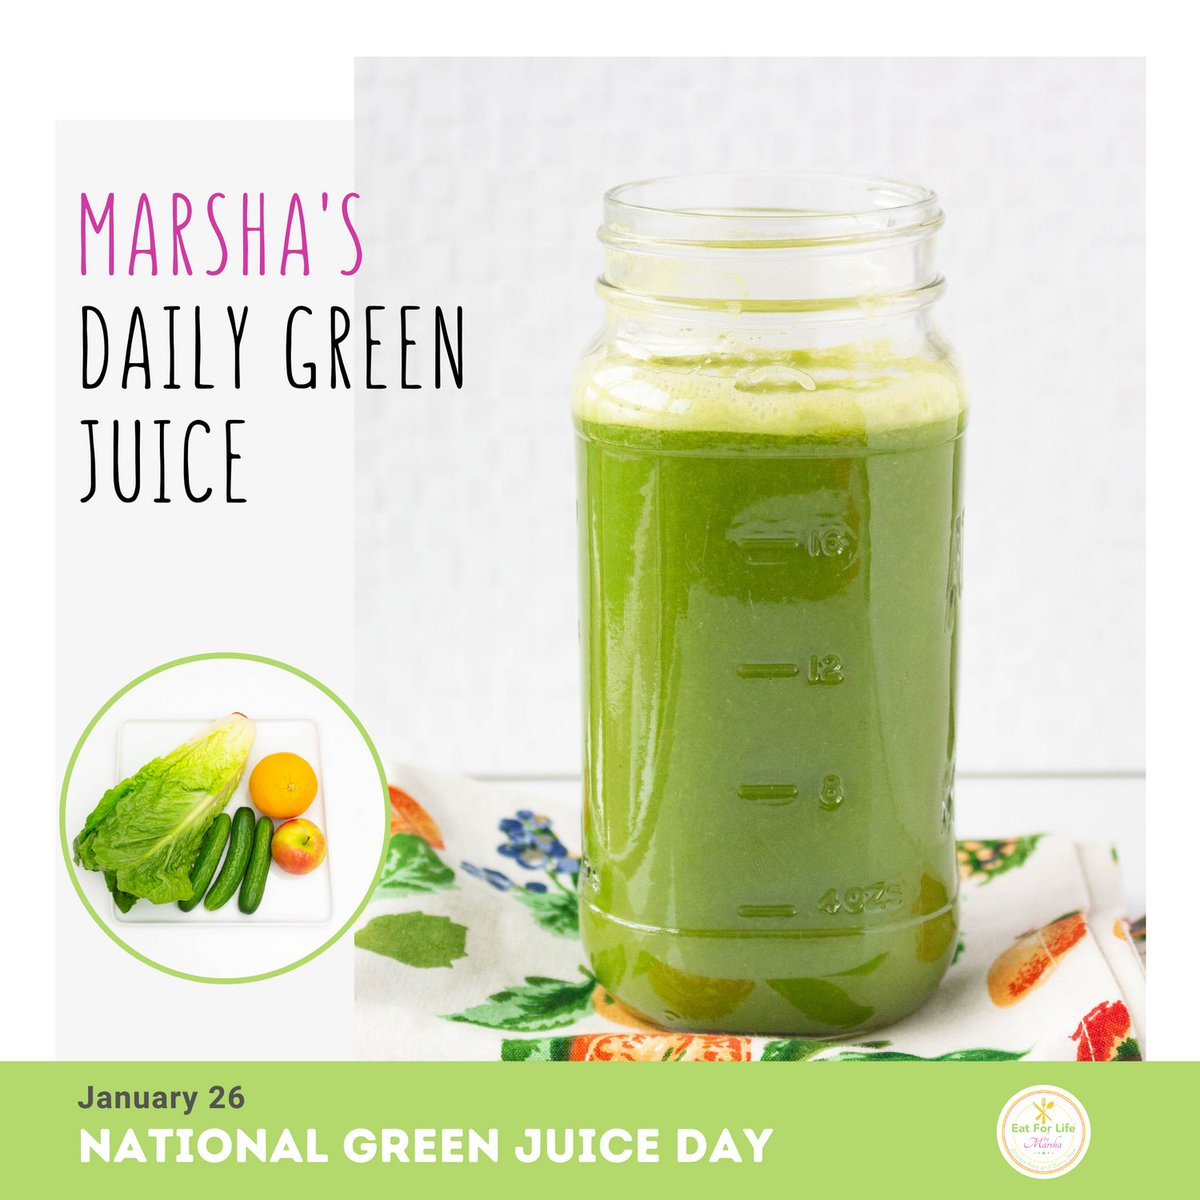 "On #NationalGreenJuiceDay, the celebration encourages you to include more #veggies in your healthy meal plan. This #greenjuice provides a healthy dose of fiber, antioxidant compounds, vitamins and minerals. Make it easy for me to ""Eat For Life""  😊🍃🍎🥒  #plantbased #vegetarian"